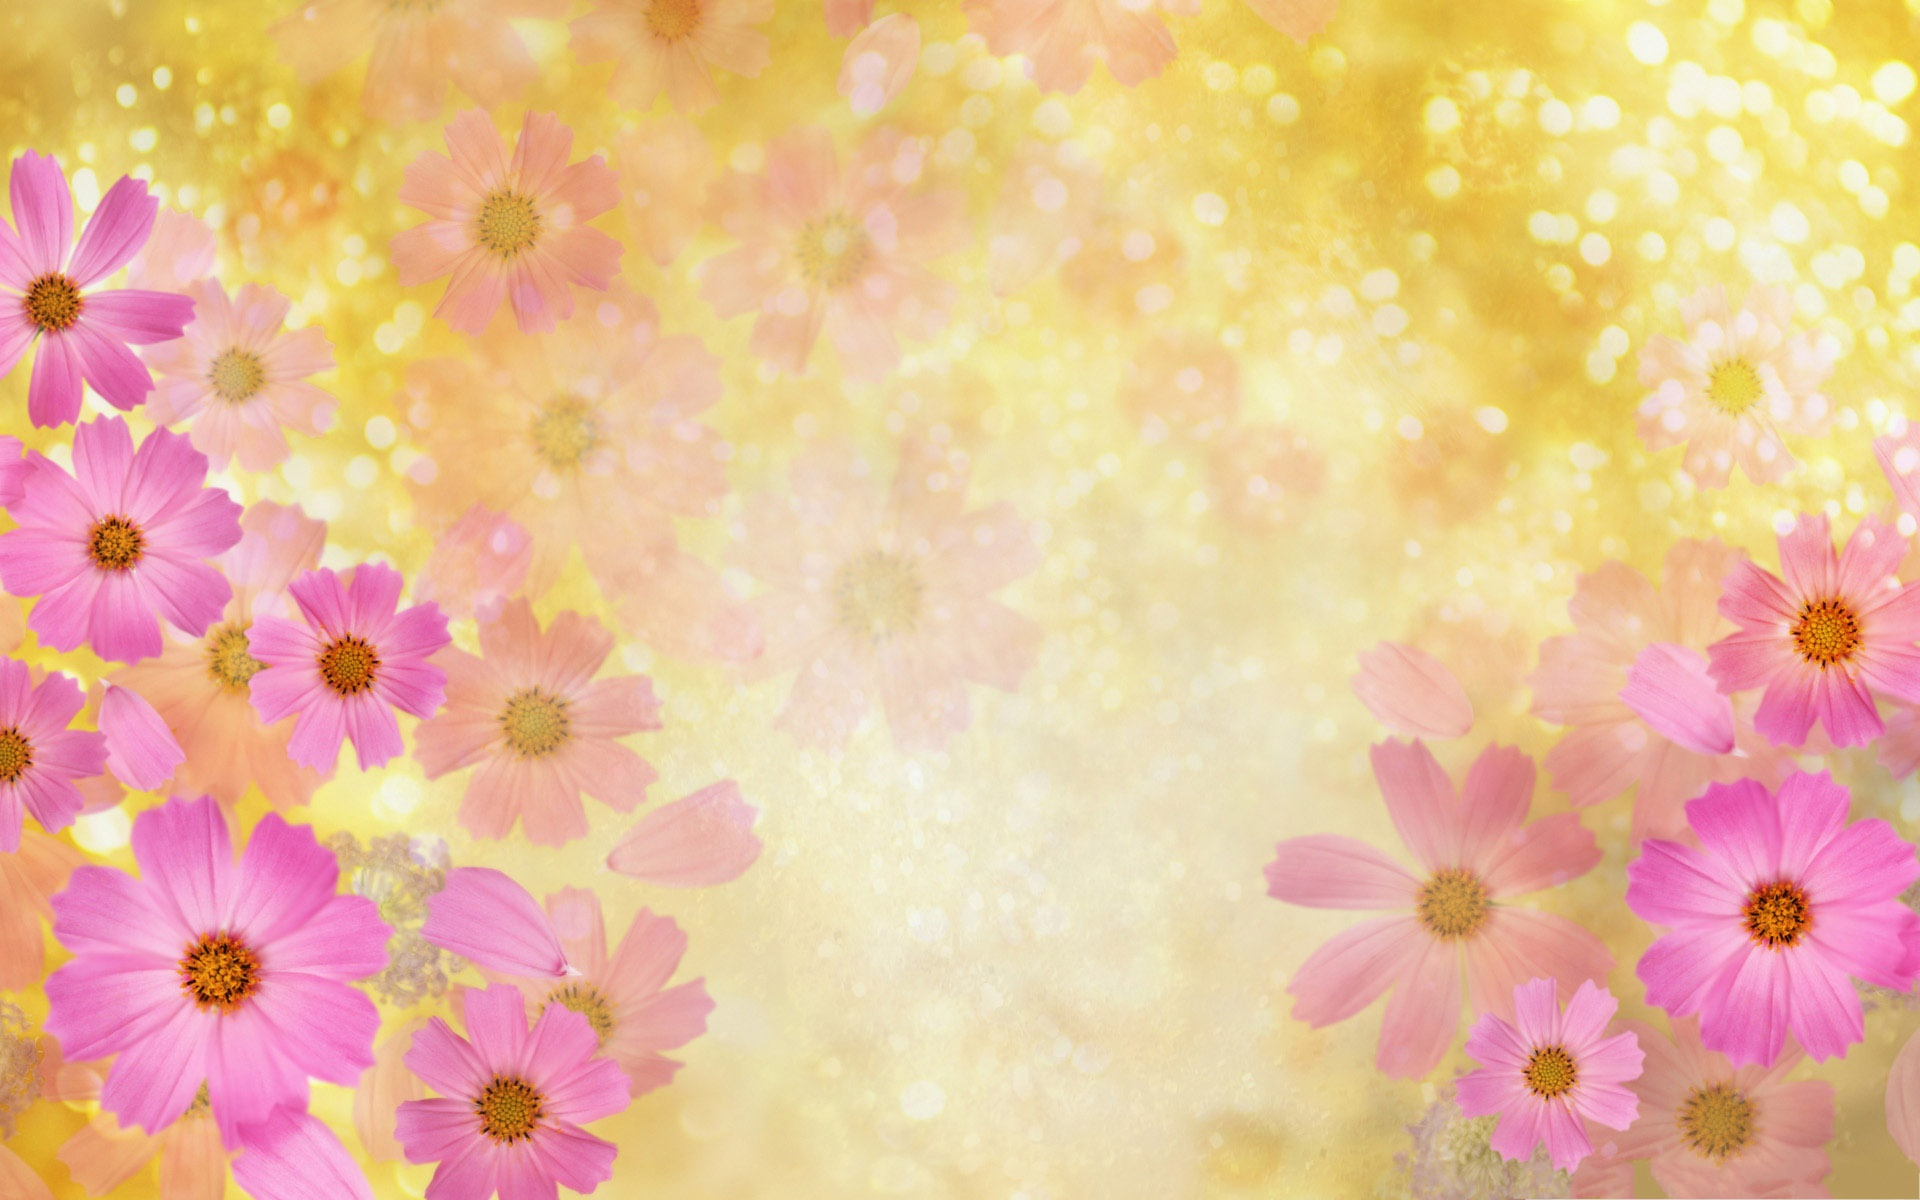 pink floral background jpg - photo #28